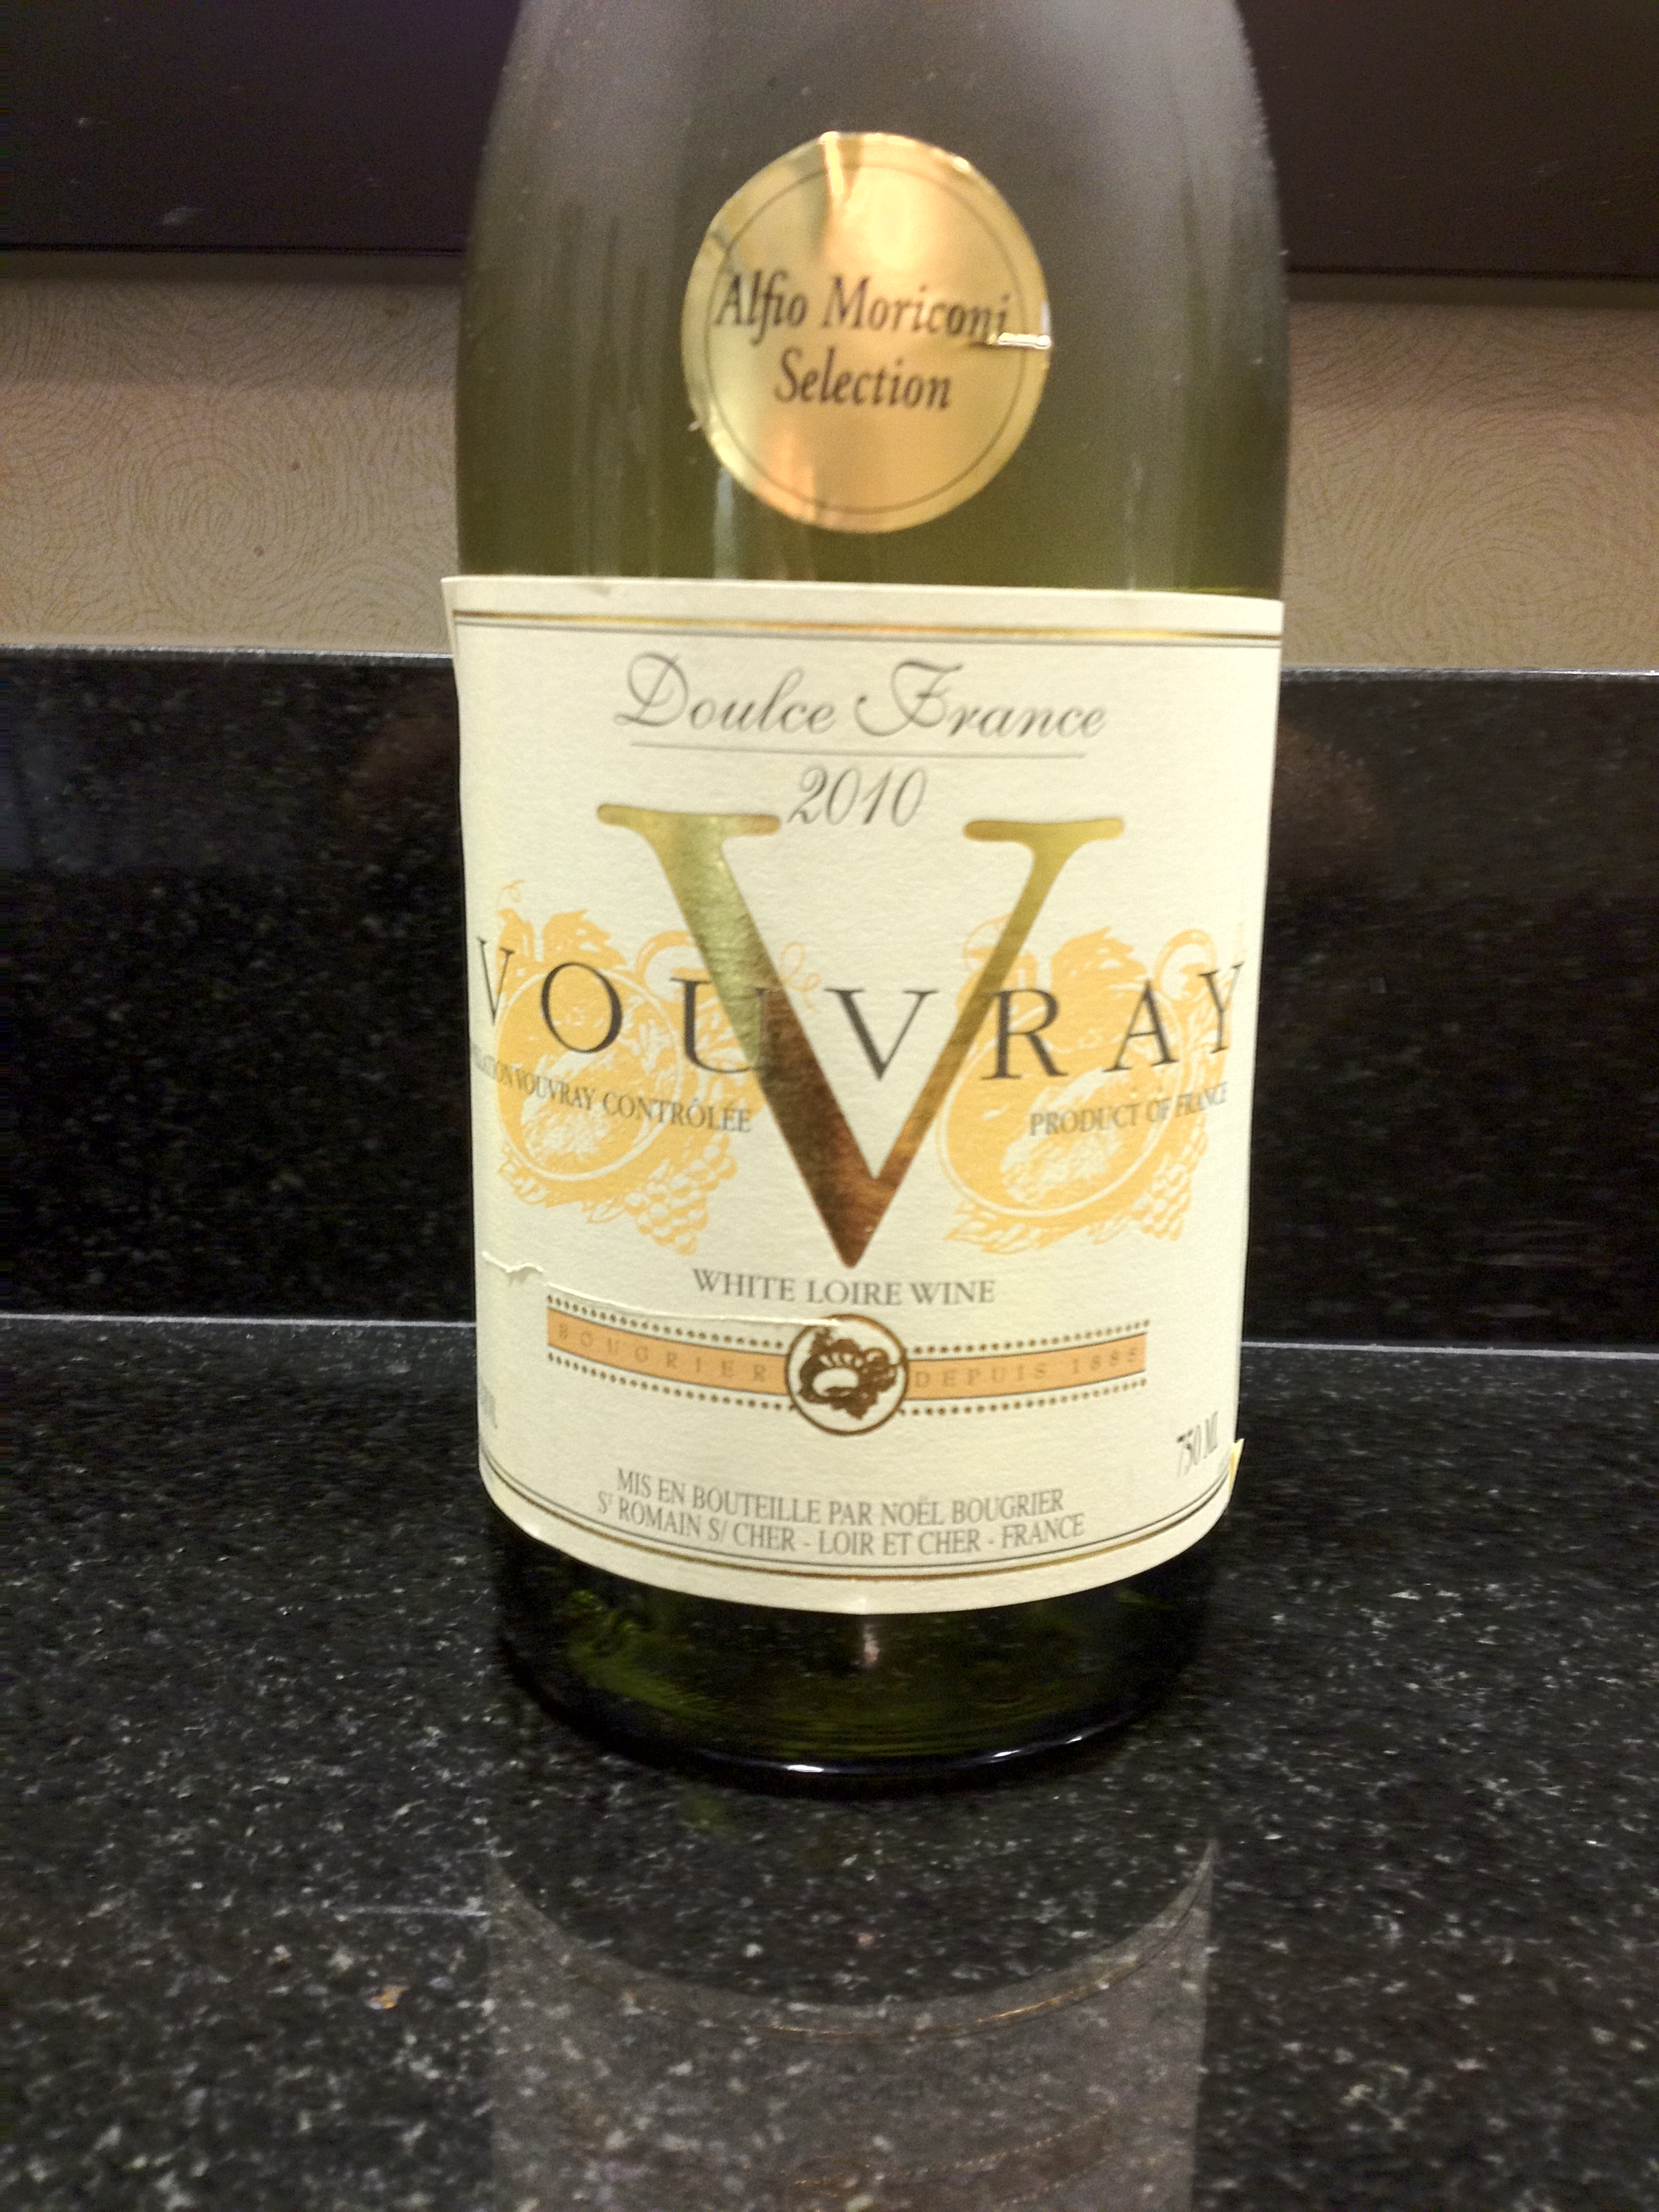 Bougrier V Vouvray Bottle